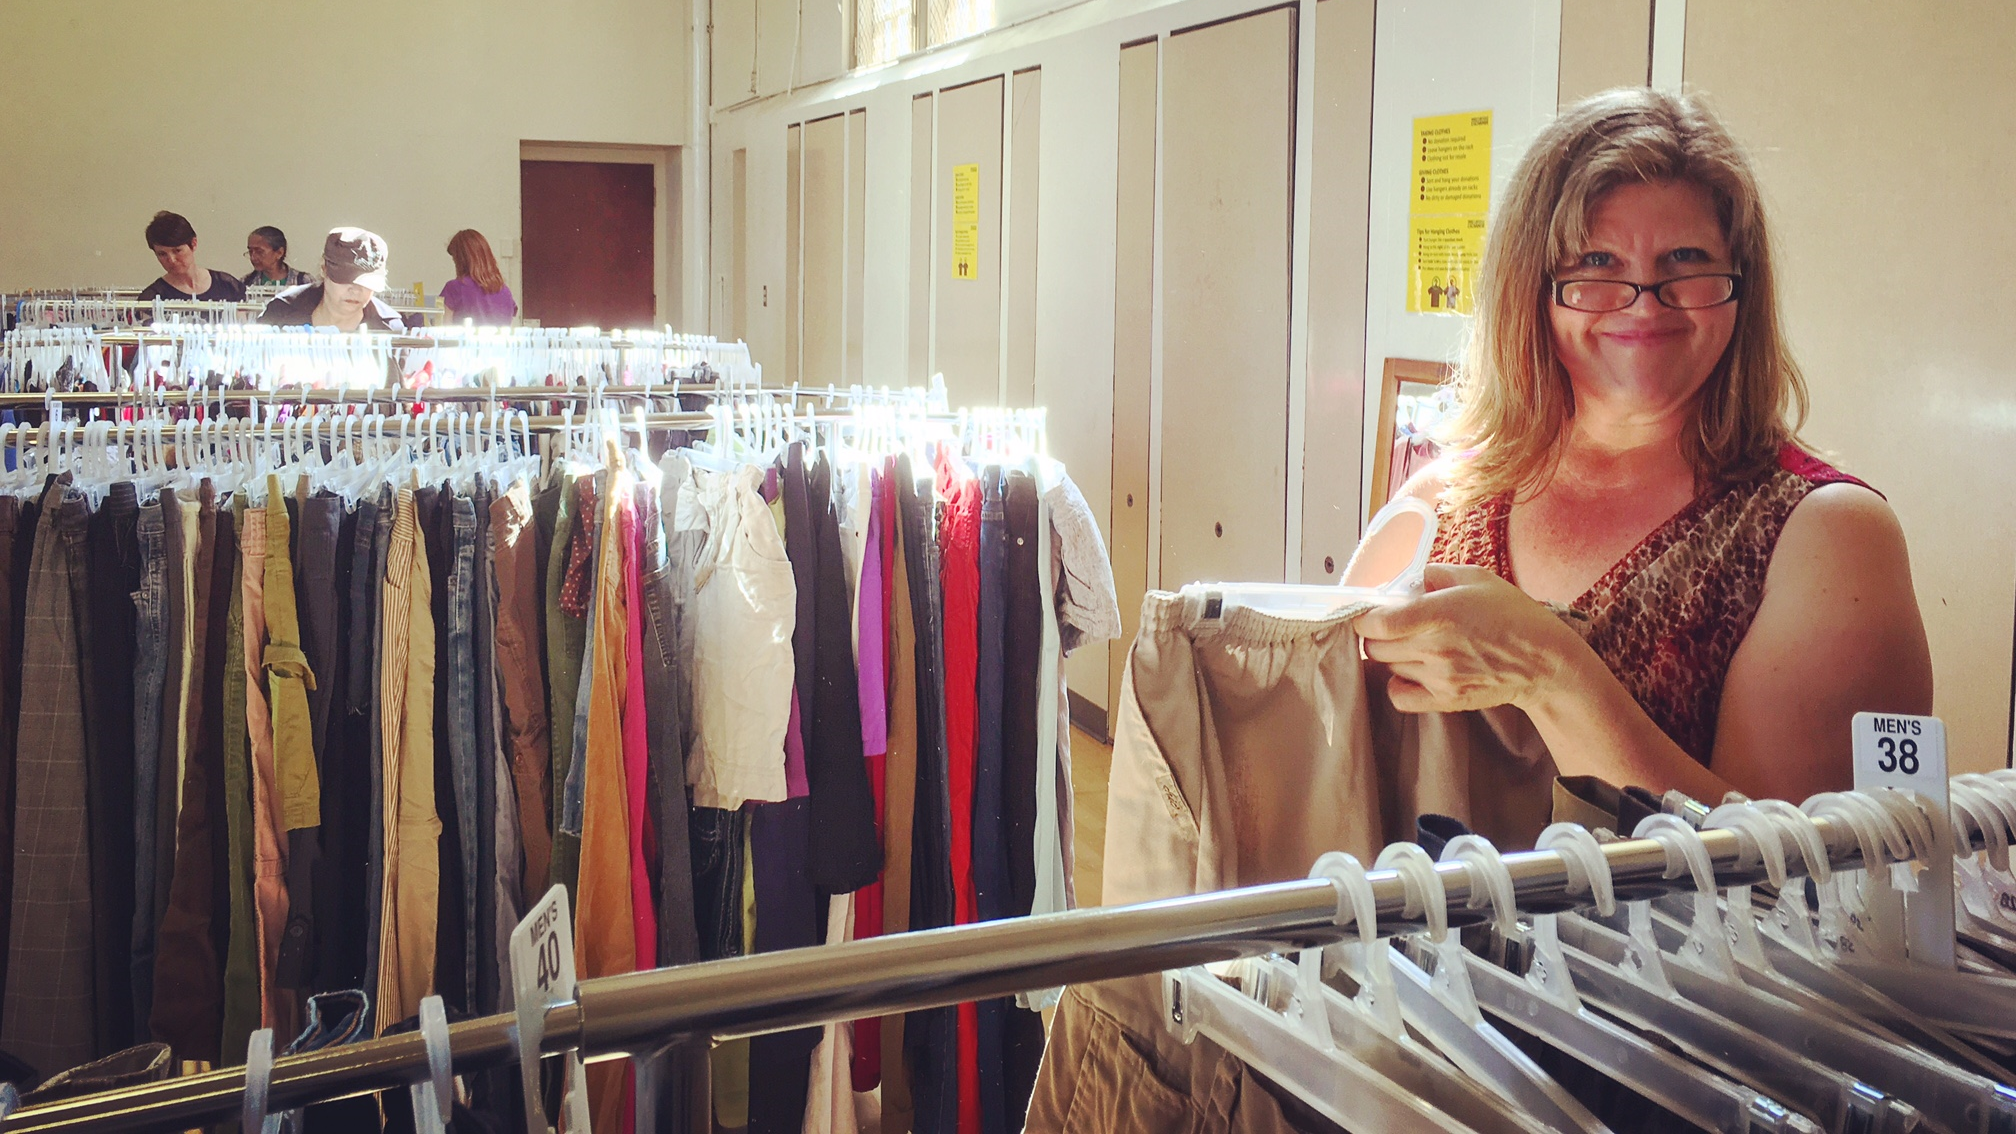 Lori, a Free Clothing Exchange volunteer, helps hang and sort new clothes during FCE's April 3rd relaunch. More than a dozen amazing folks volunteered their time to help plan, set up, sort, greet and tear down during the event.  Thank you all so much!